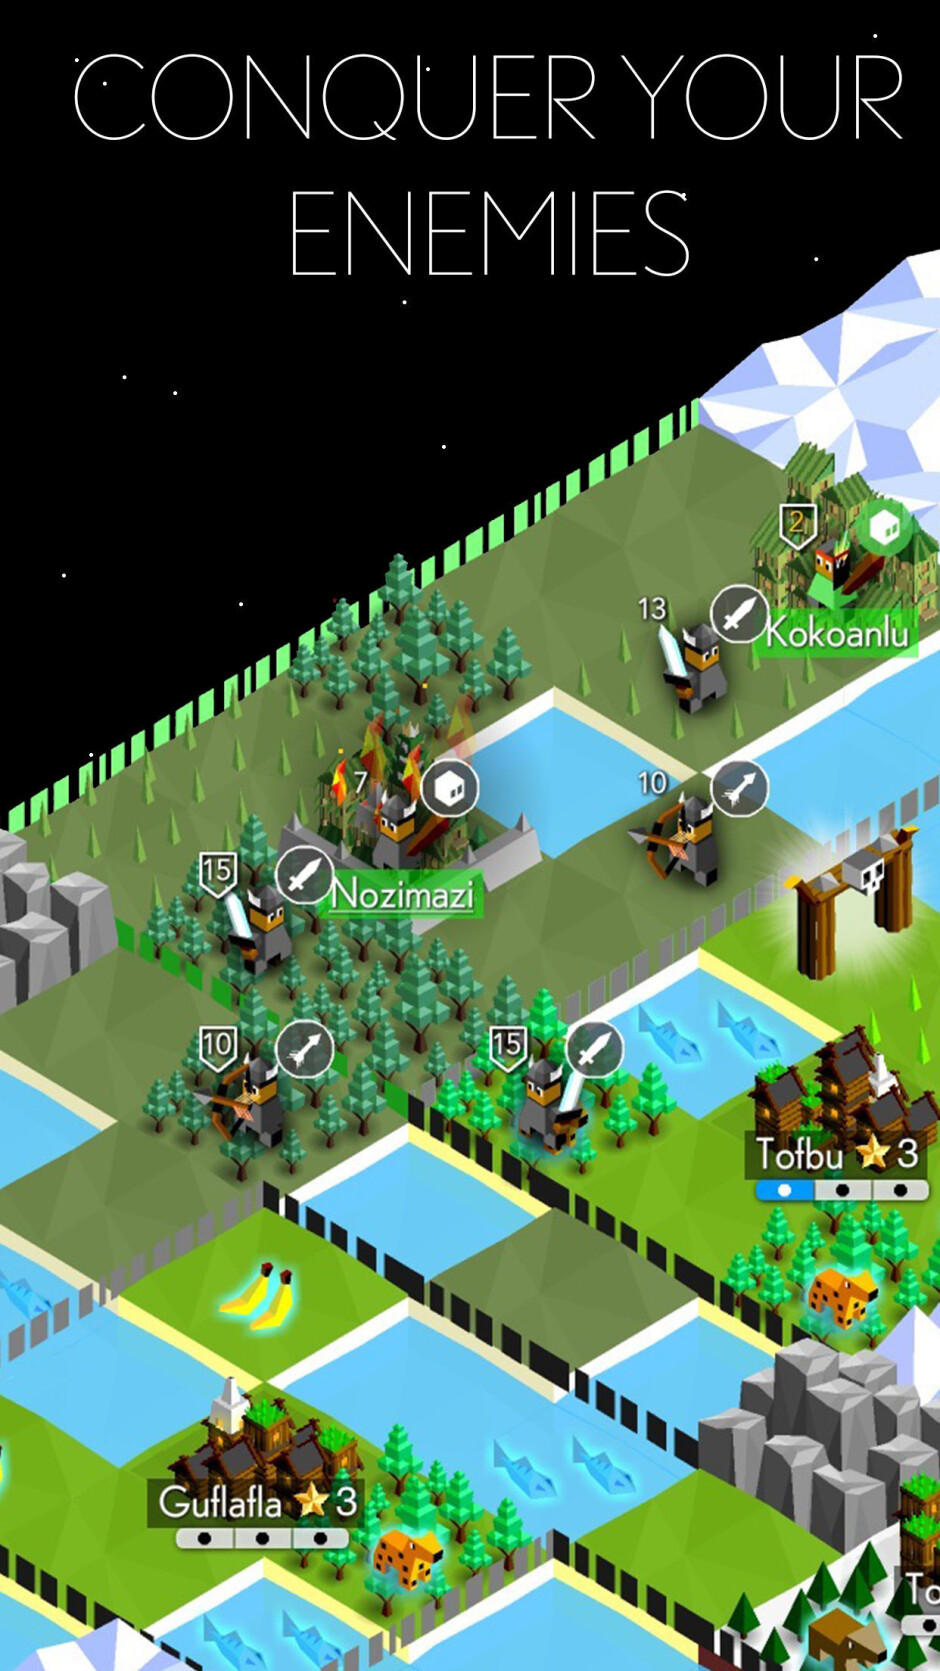 The Battle of Polytopia - Best free iOS games to play on your iPhone or iPad in 2019